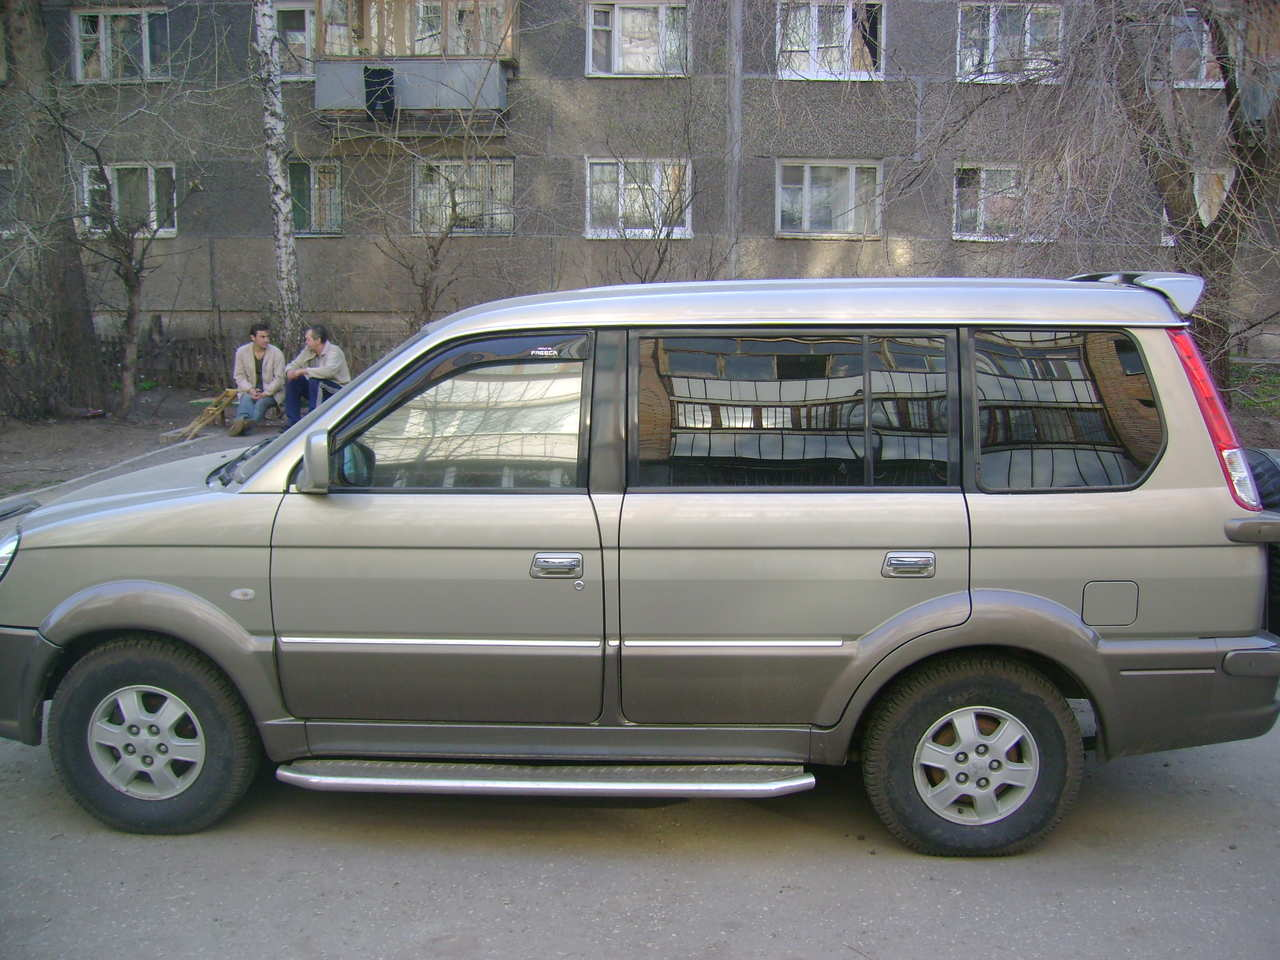 2004 Mitsubishi Freeca Pictures, 2.0l., Gasoline, FR or RR, Automatic For Sale